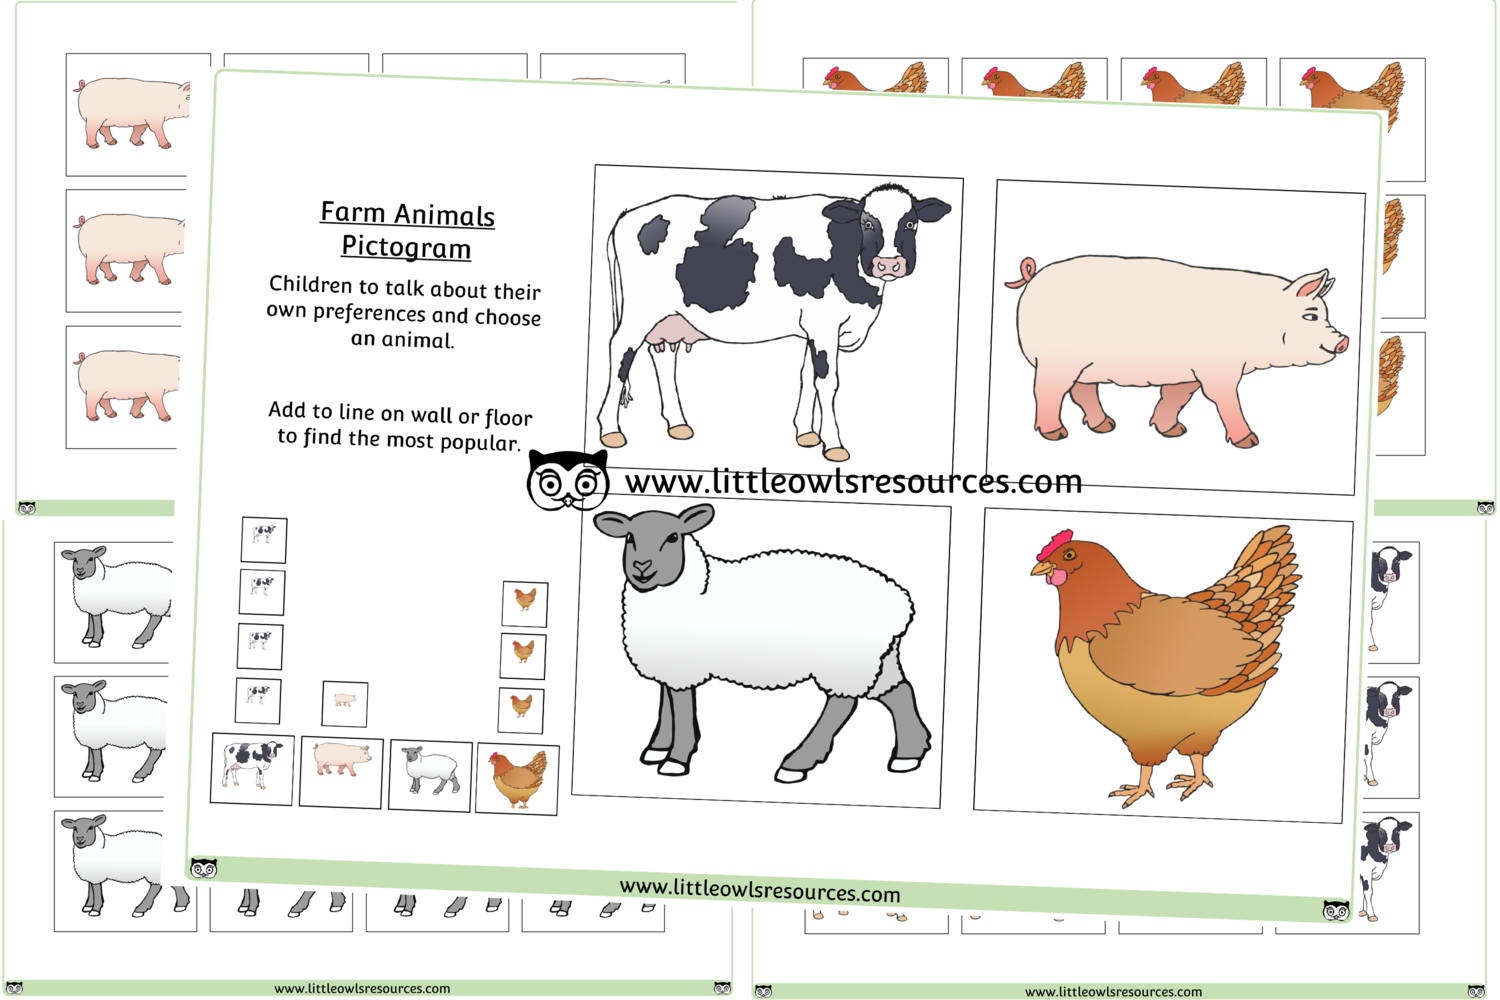 Free Farm Animal Pictogram Printable Early Years Ey Eyfs